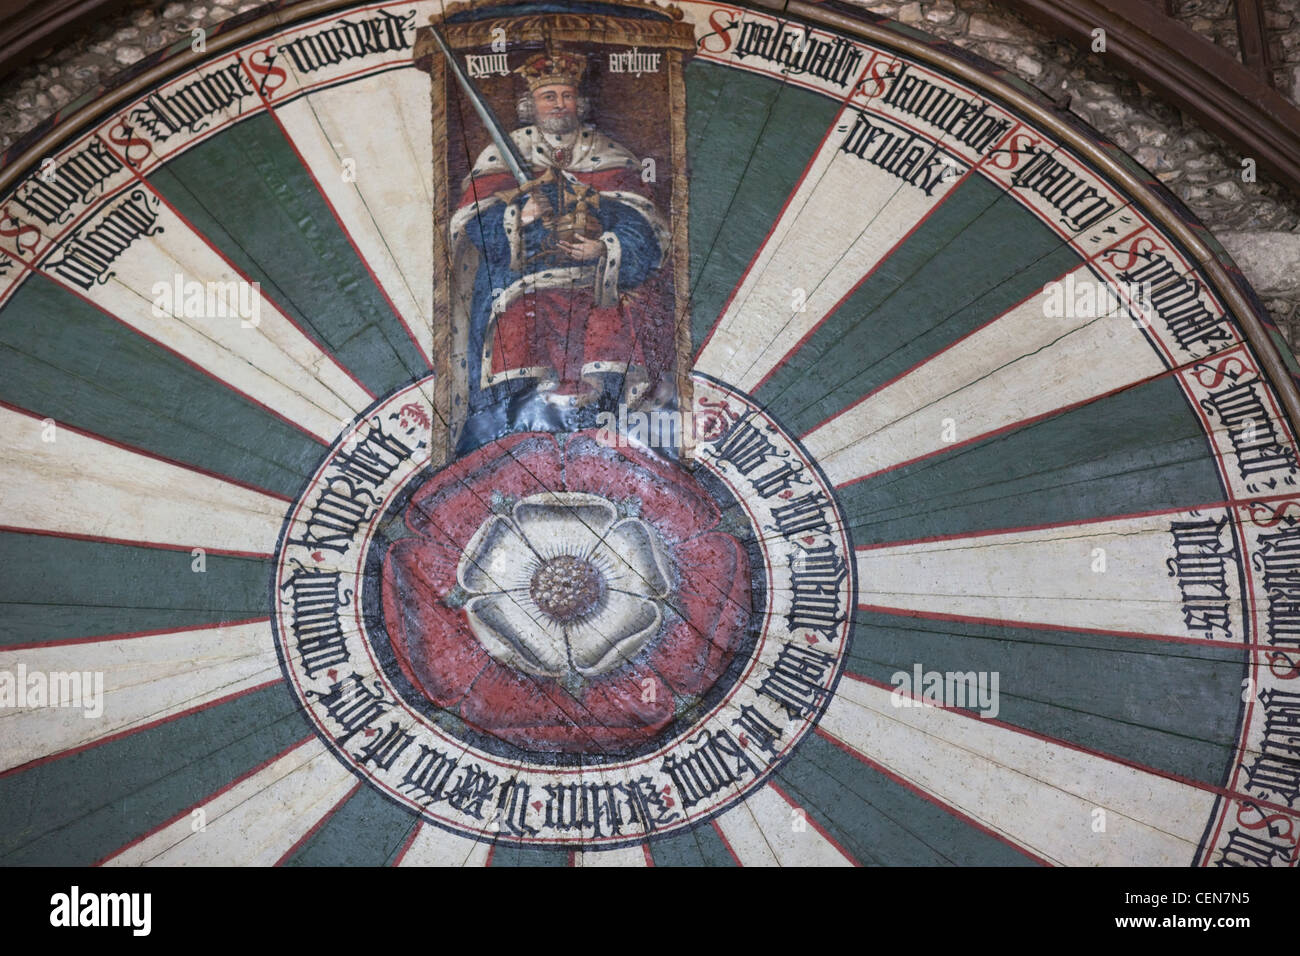 Winchester round table stock photos winchester round table stock images alamy - Round table winchester cathedral ...